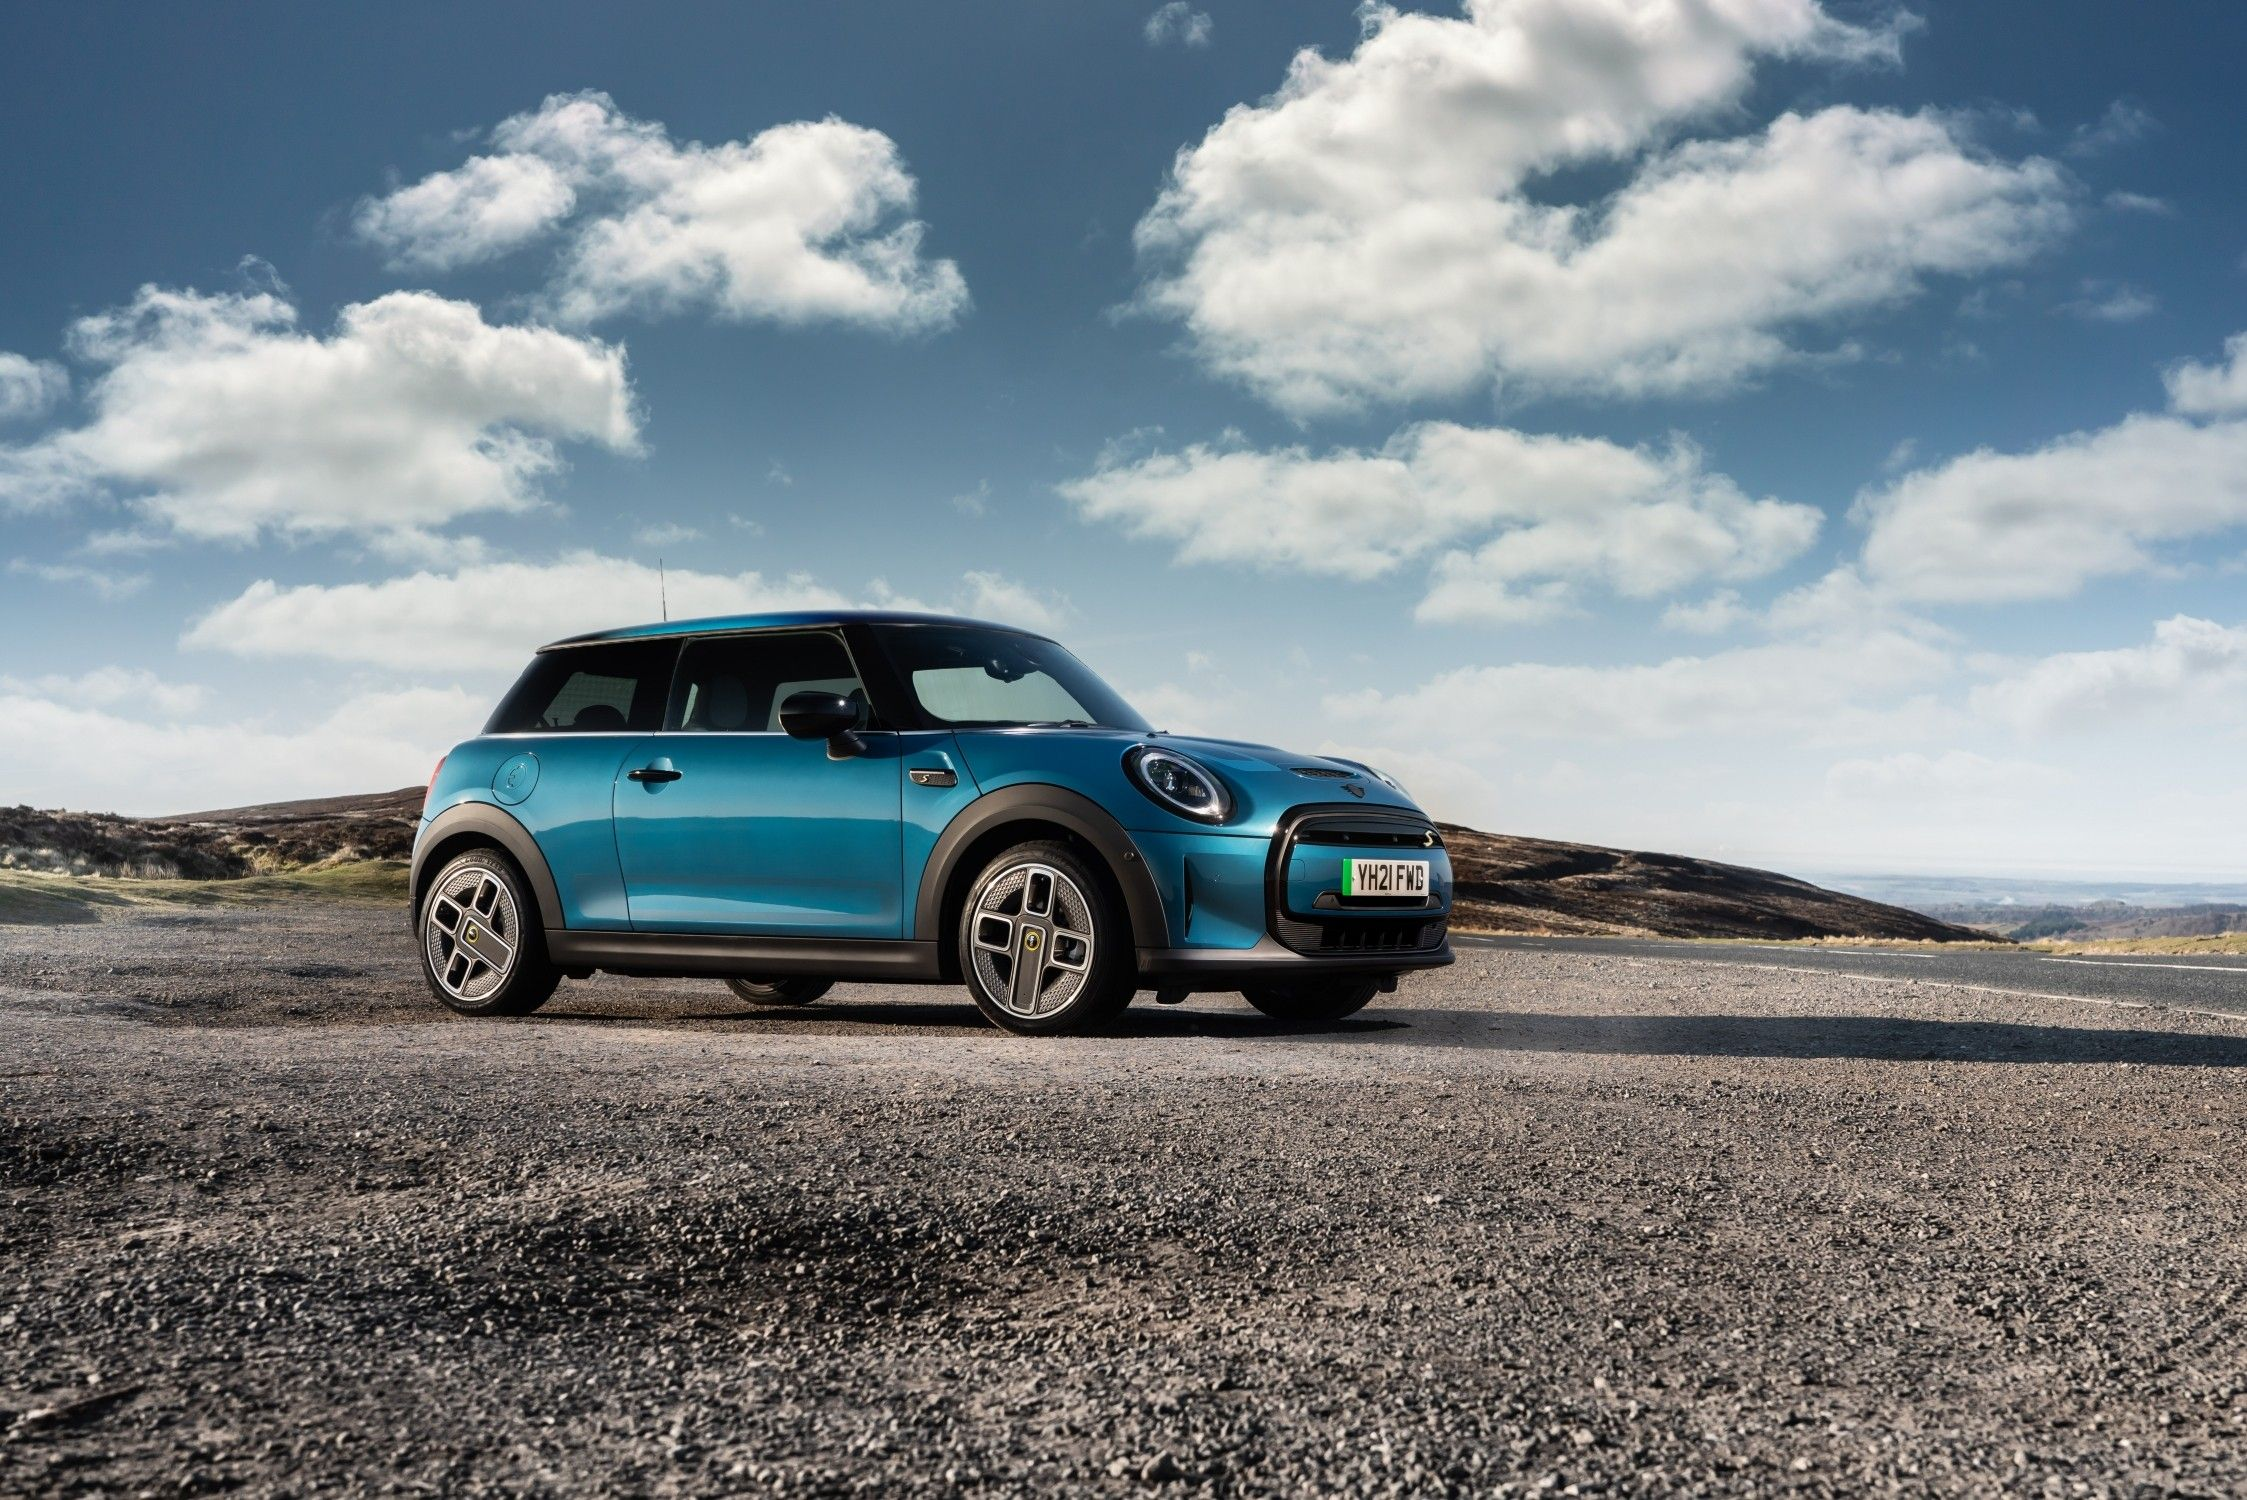 MINI Electric: A Car That Feels Ready-Made for the EV Era